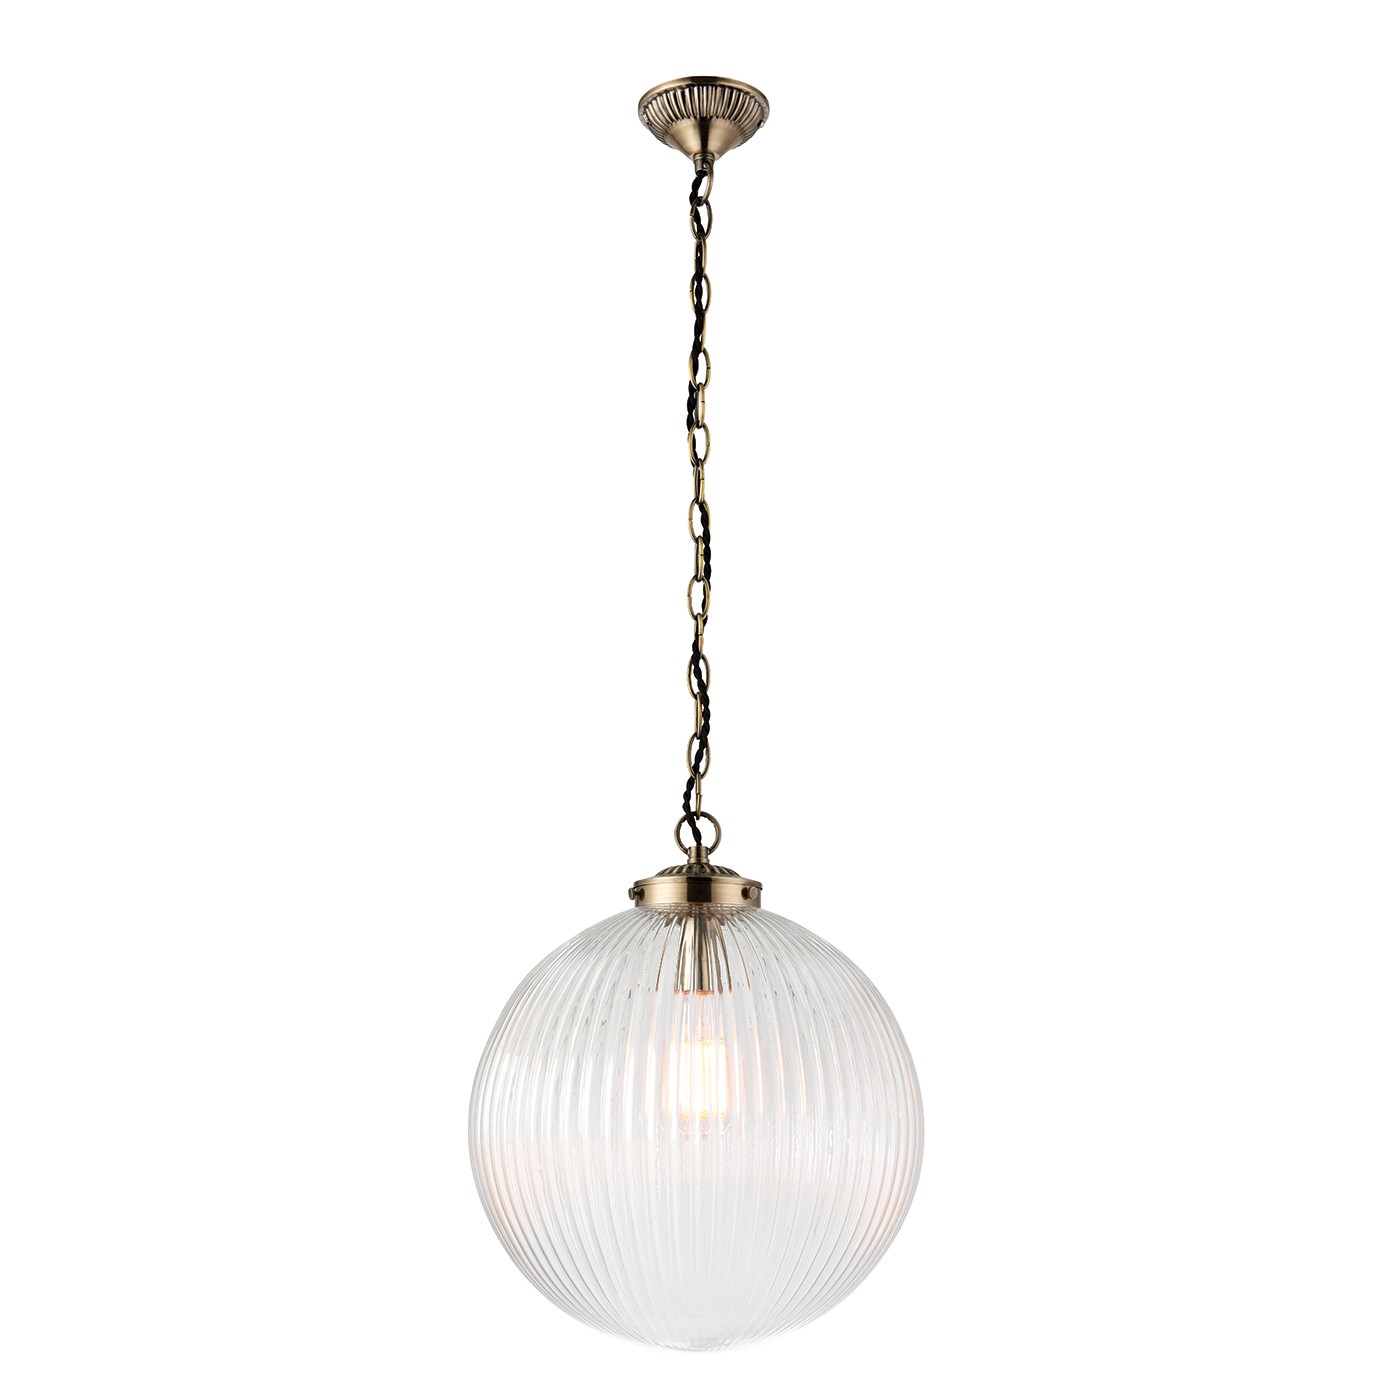 Endon Brydon pendant 1x 40W Clear ribbed glass & antique brass finish